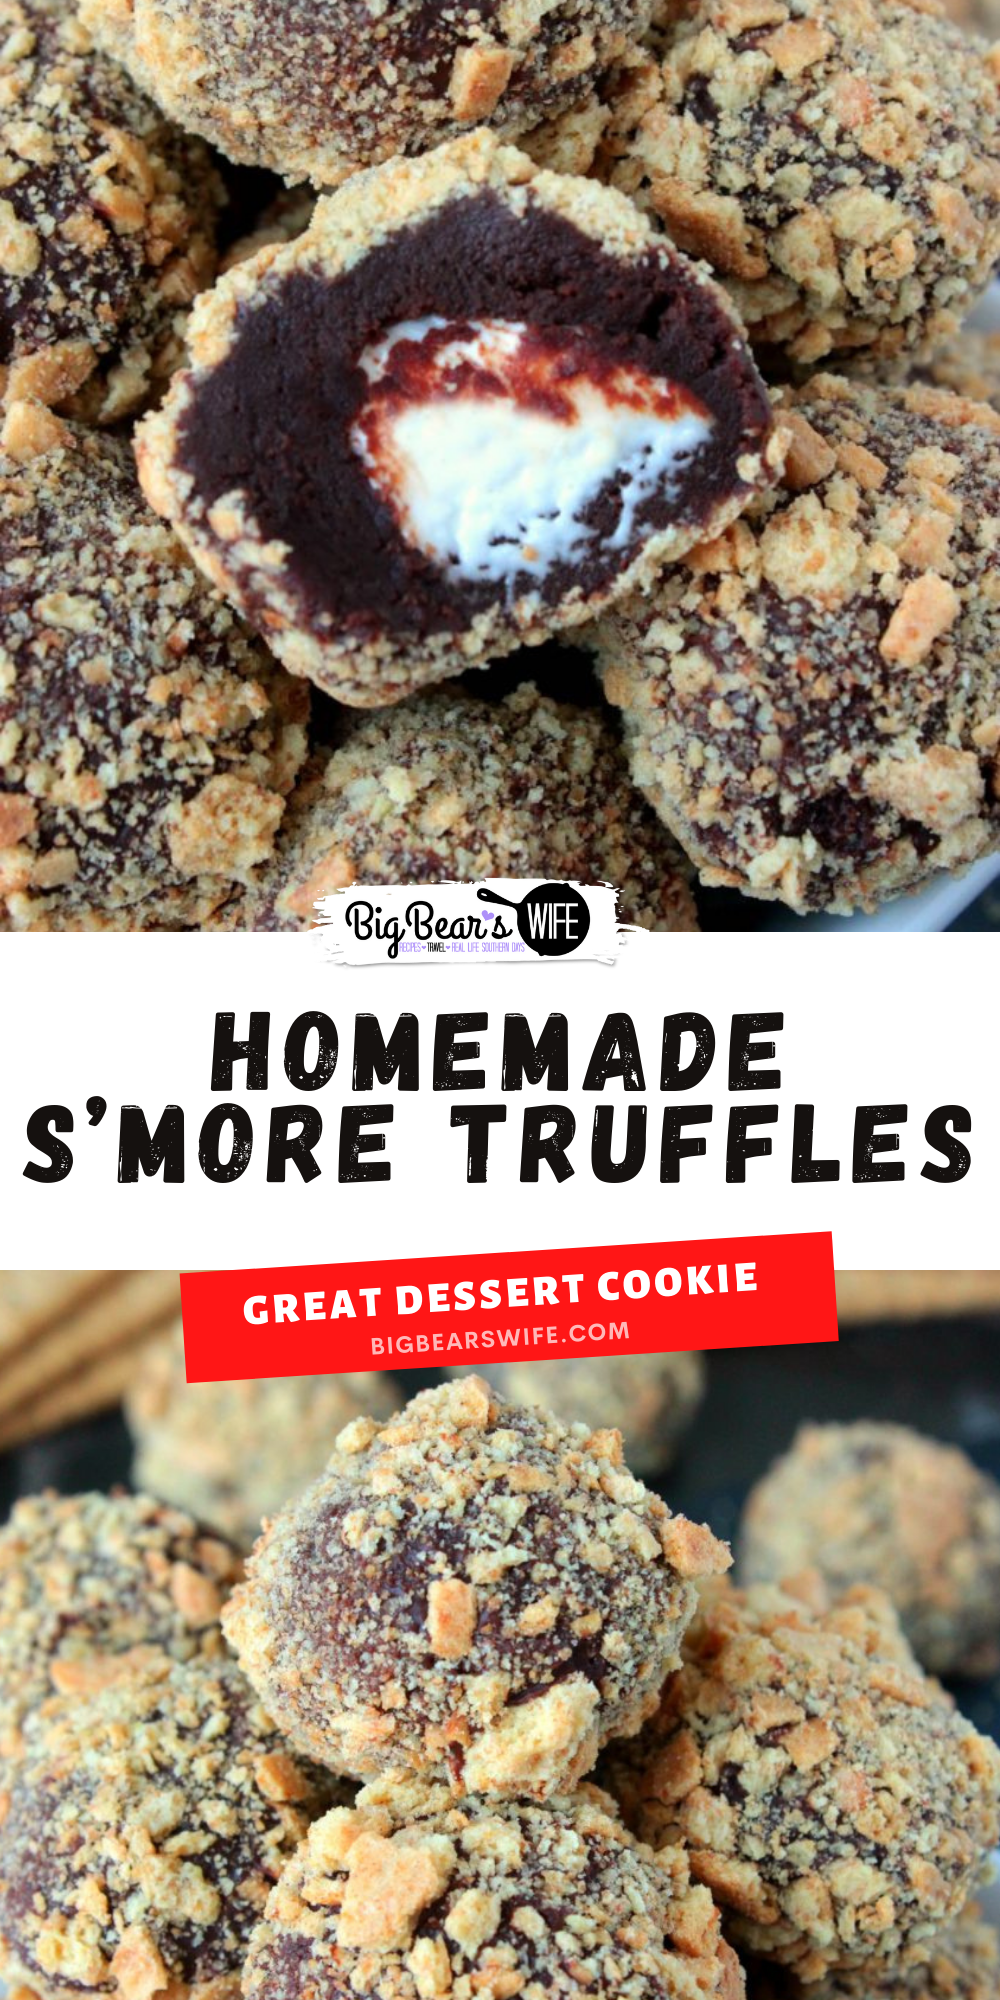 Homemade S'more Truffles - Know a s'more lover in your life? You NEED to send this recipe for Homemade S'more Truffles to them asap! Homemade Chocolate ganache truffles with a marshmallow center that's been rolled in crushed graham crackers is a s'mores lover's dream come true. via @bigbearswife